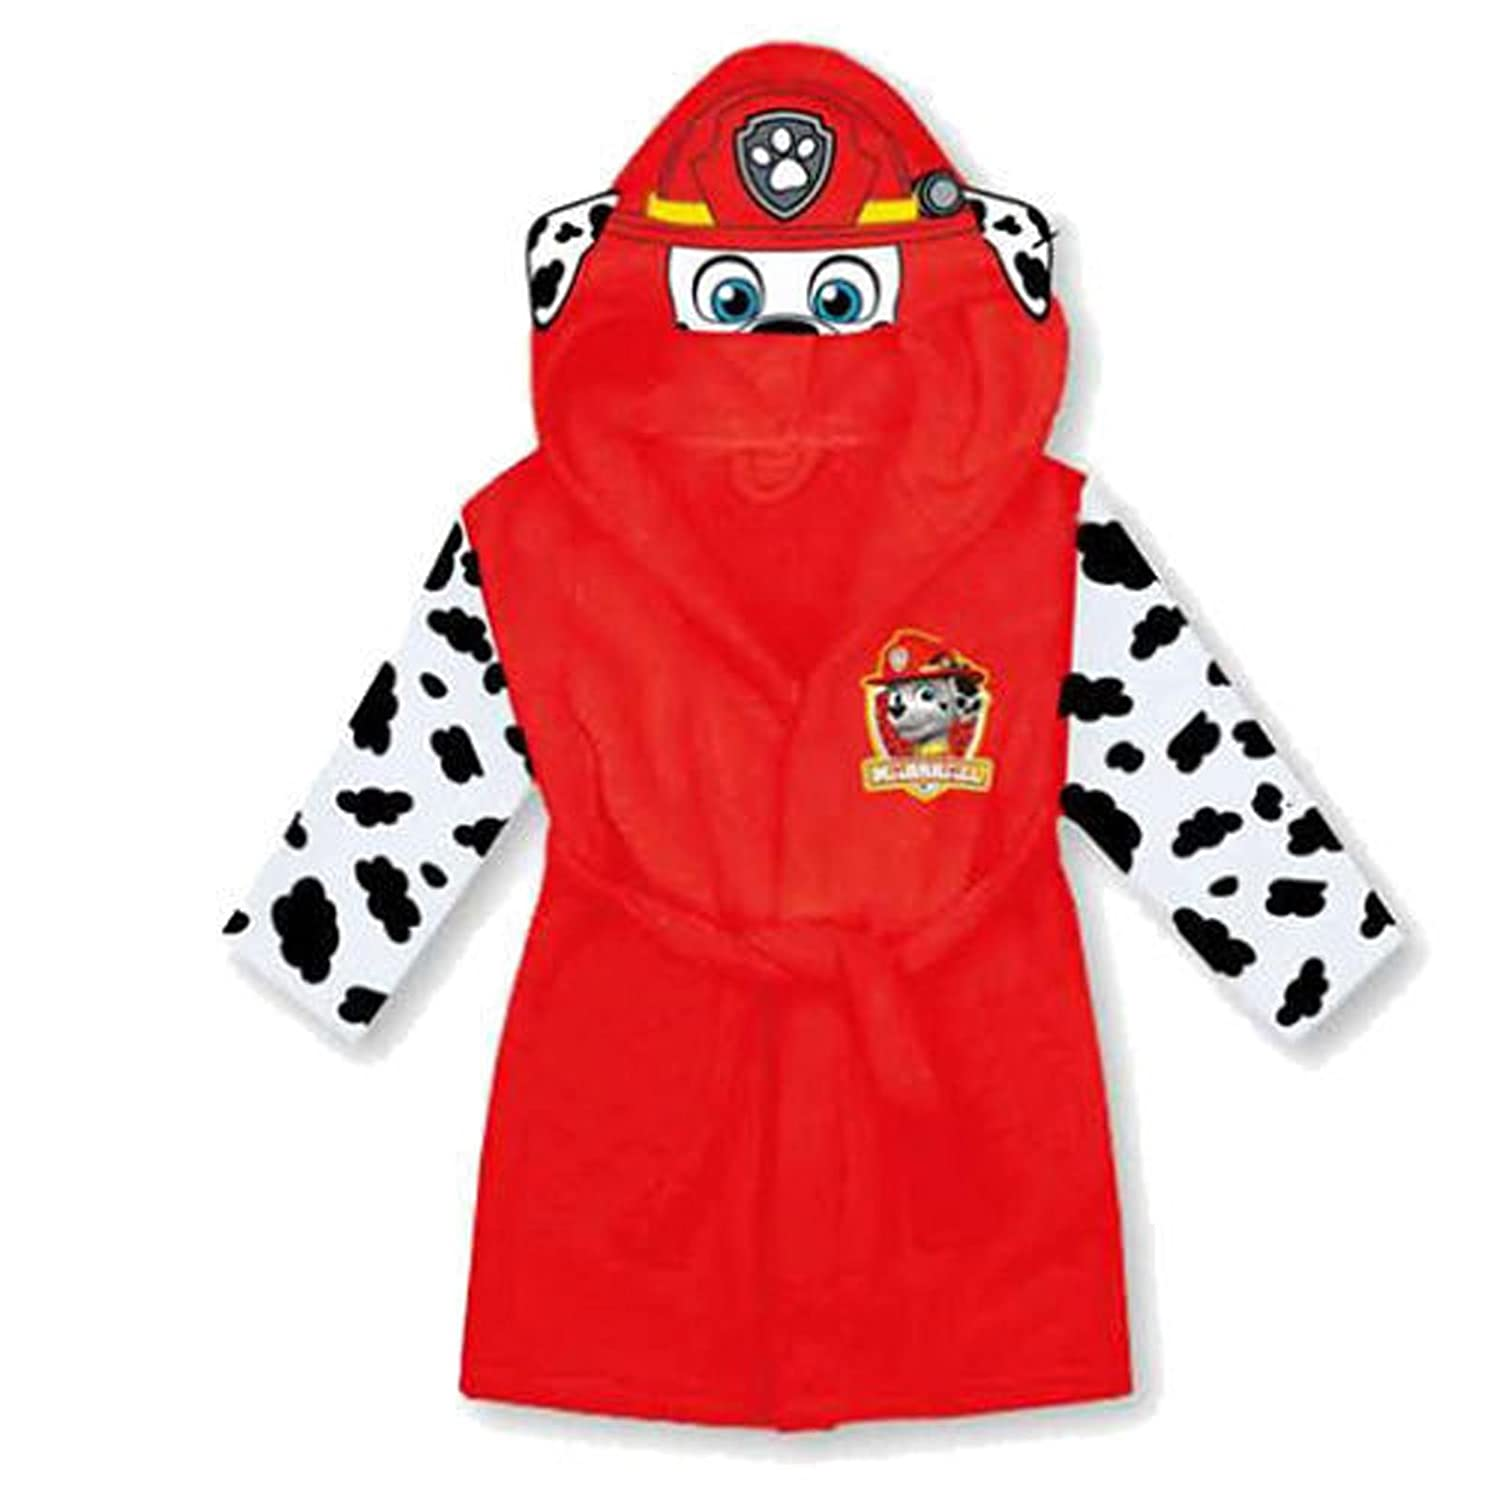 Nick Jr Paw Patrol Red Fleece Marshall Dressing Gown 2-3: Amazon.co ...